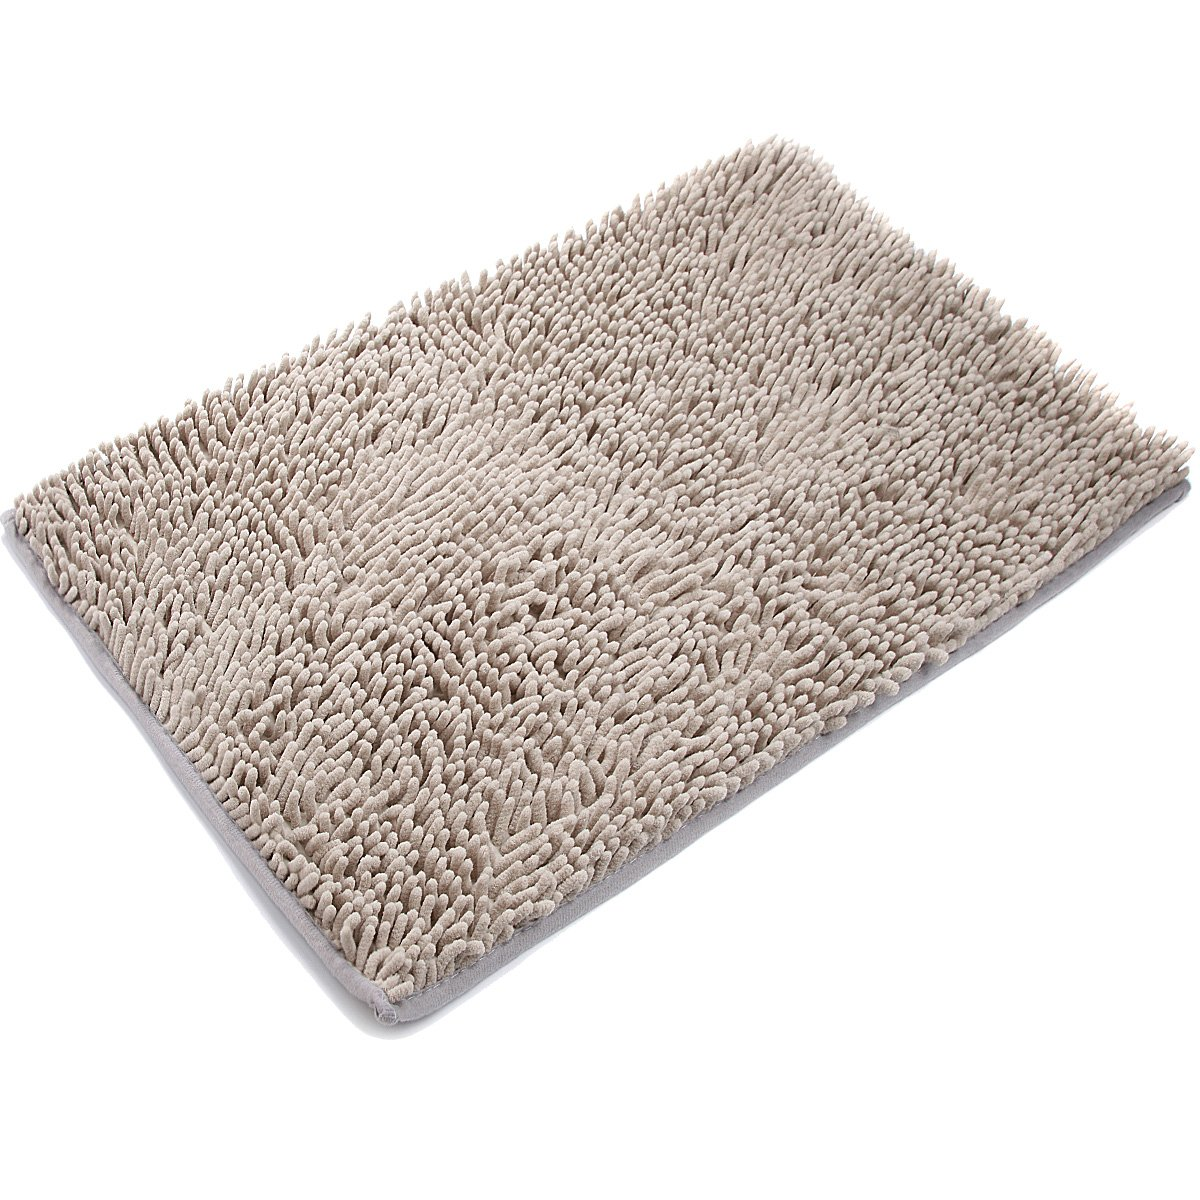 Non Slip Bathroom Mats Vdomus Microfiber Non Slip Bath Mat Bathroom Mats Shower